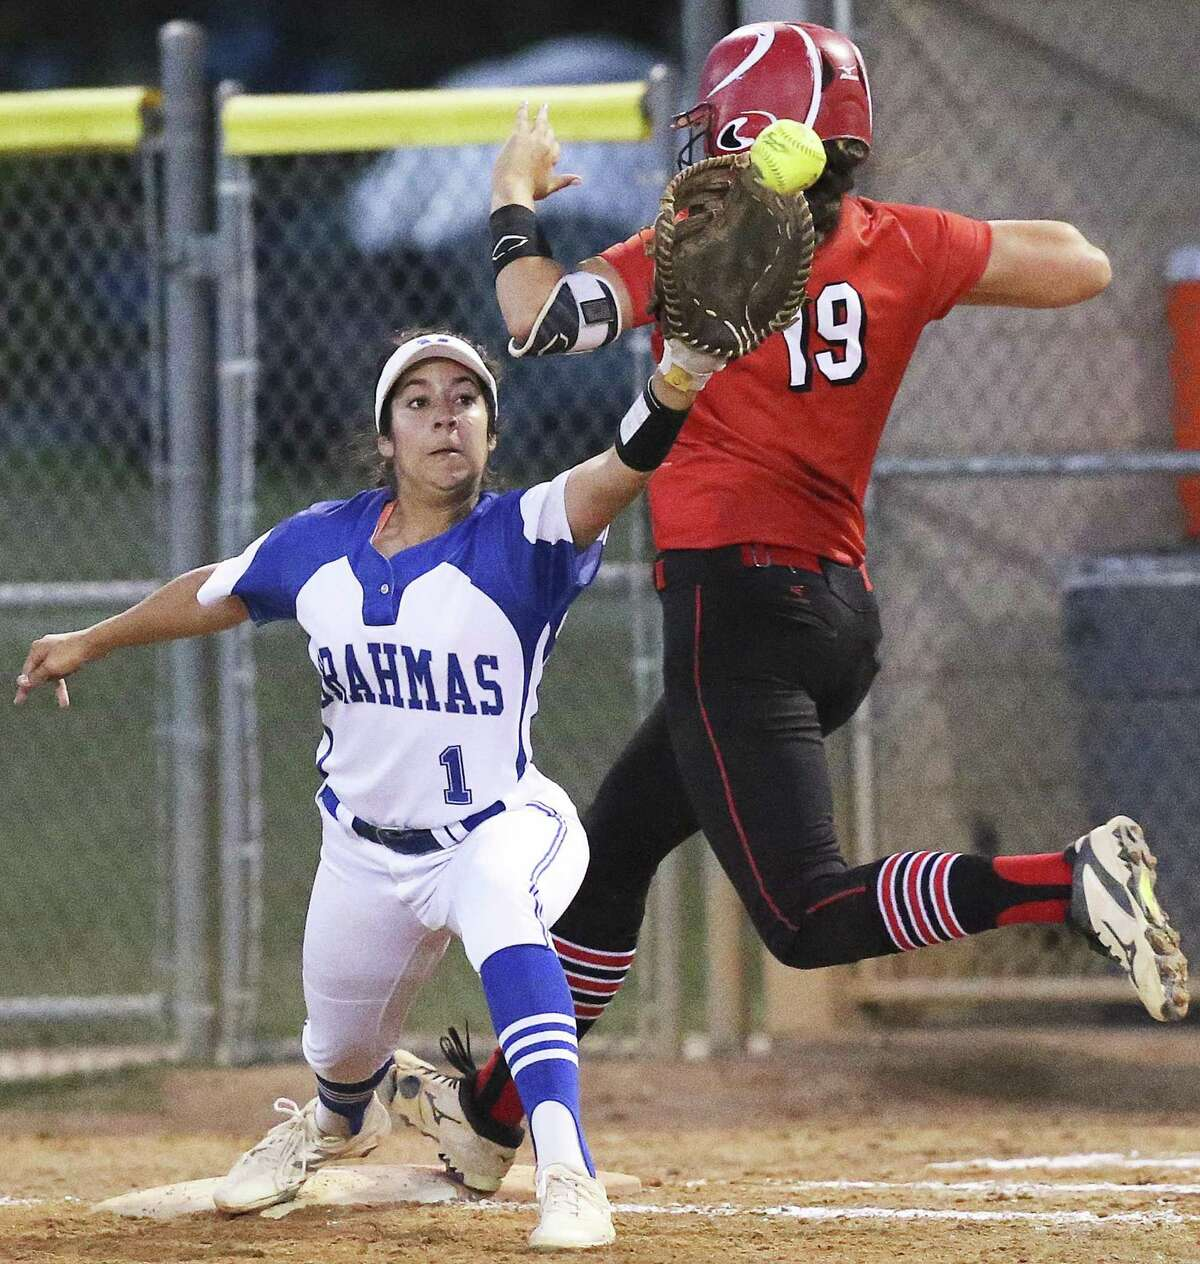 Brooke Vestal beats the throw to first as the Brahmas Kiersten Licea can't reach out far enough to make the out as Canyon plays MacArthur in clas 6A second round softball playoffs on May 5, 2017.